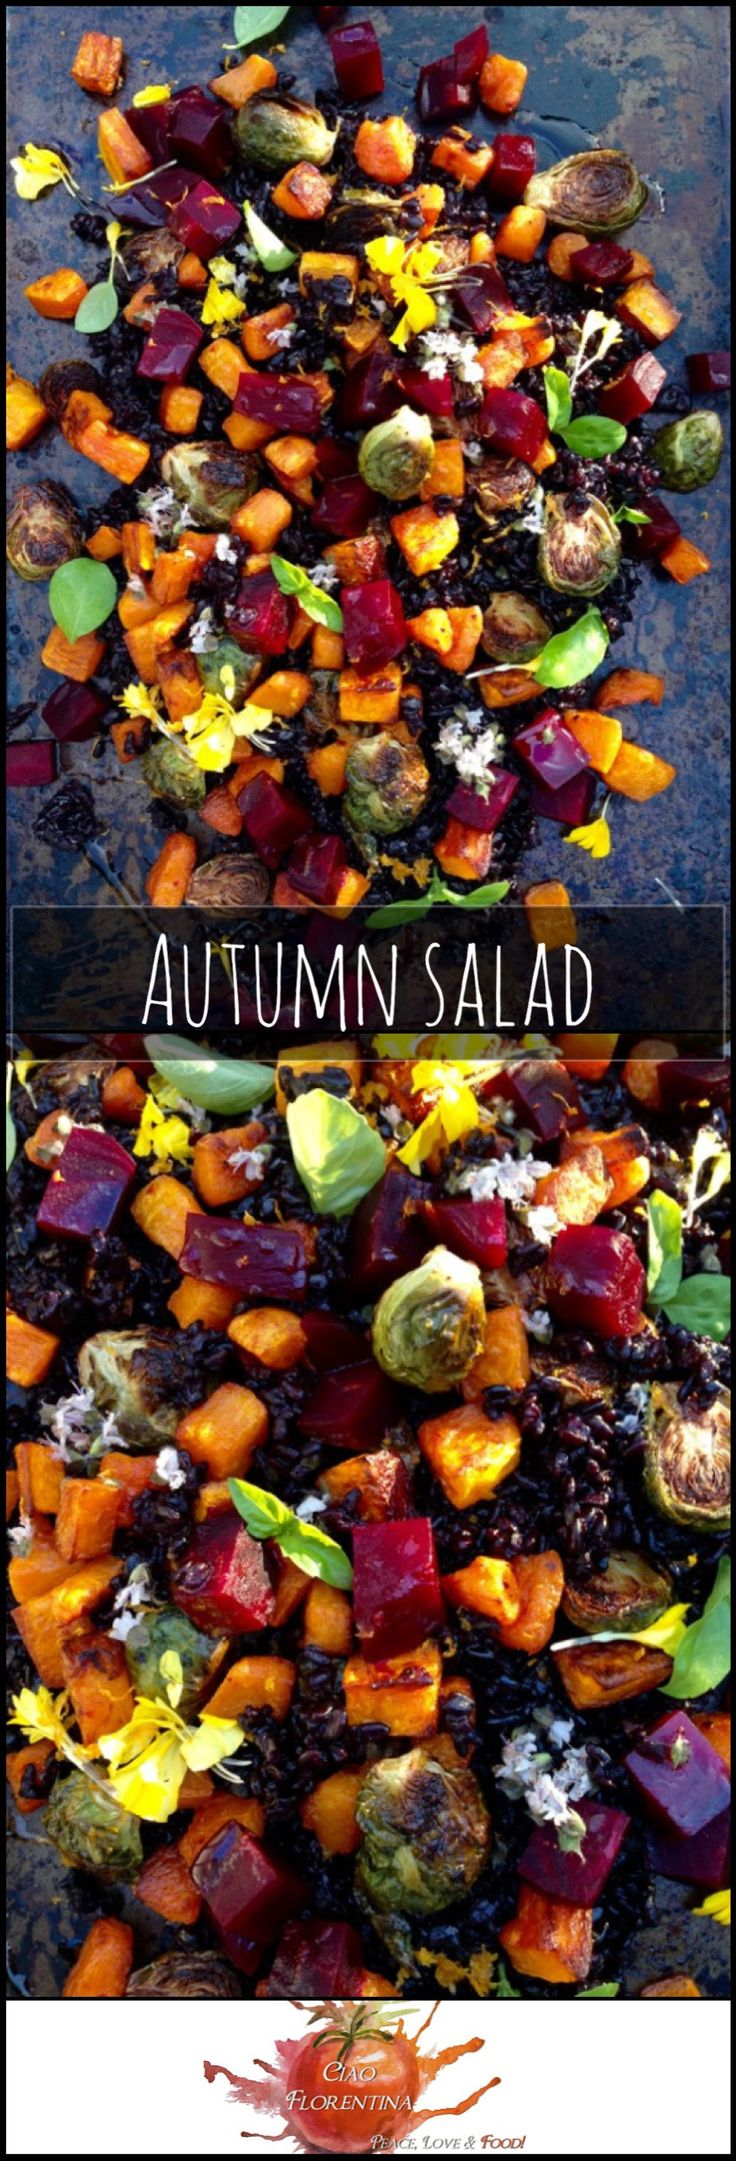 Autumn Salad Recipe of Roasted Red Beets, Butternut Squash & Roast Brussels Sprouts | www.CiaoFlorentin…